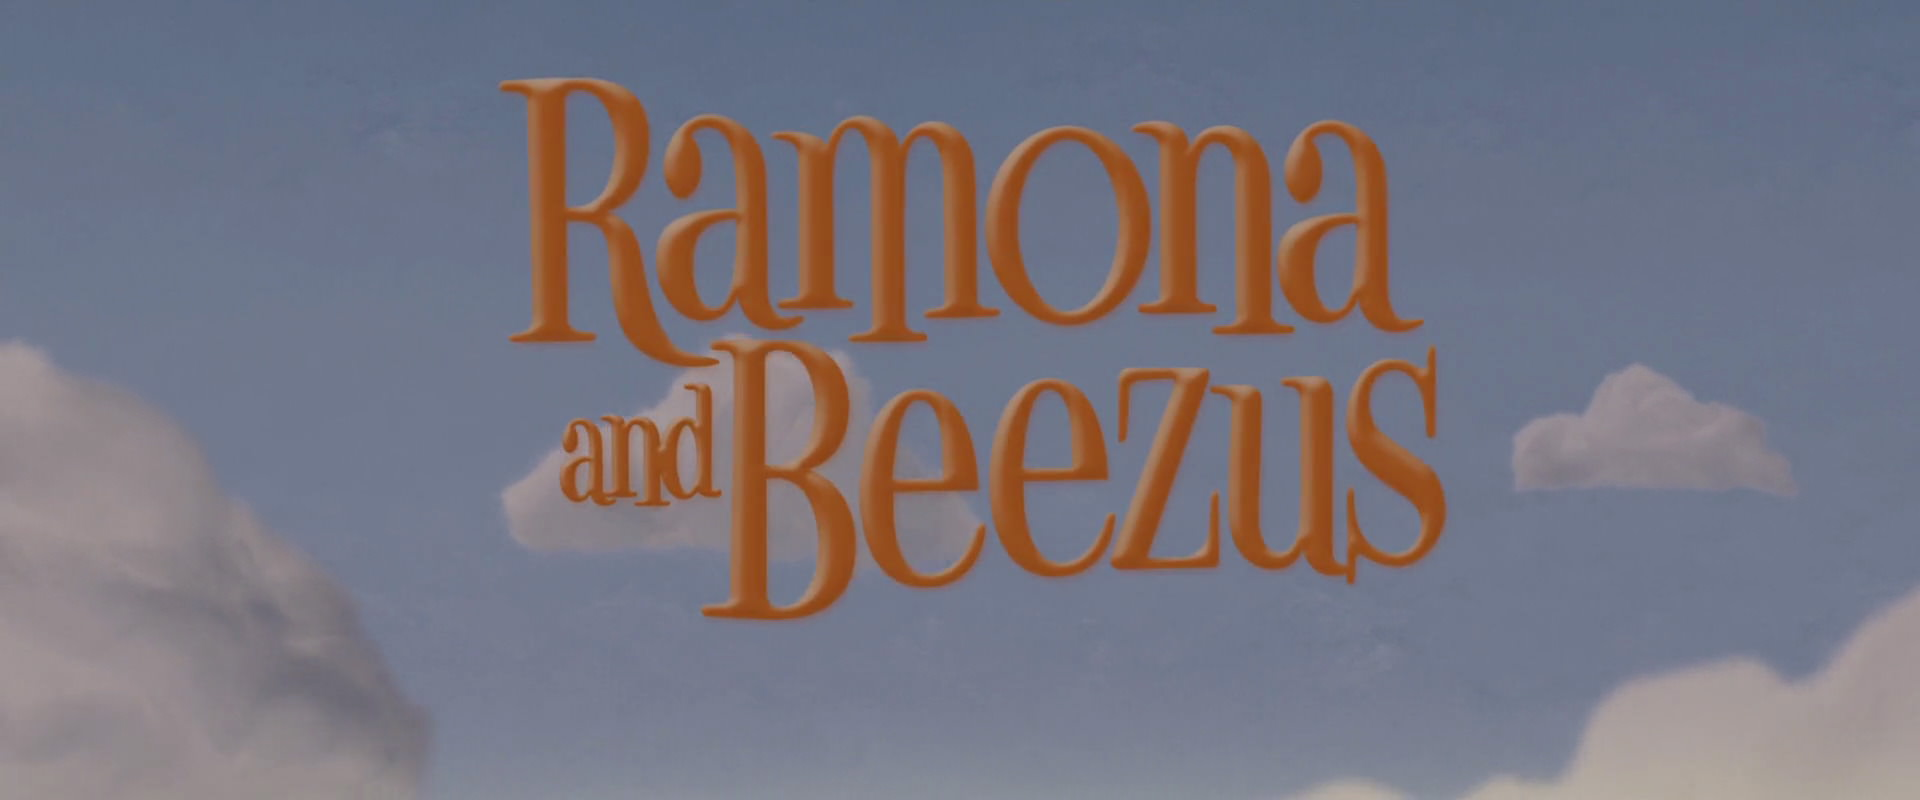 ramona and beezus download movie